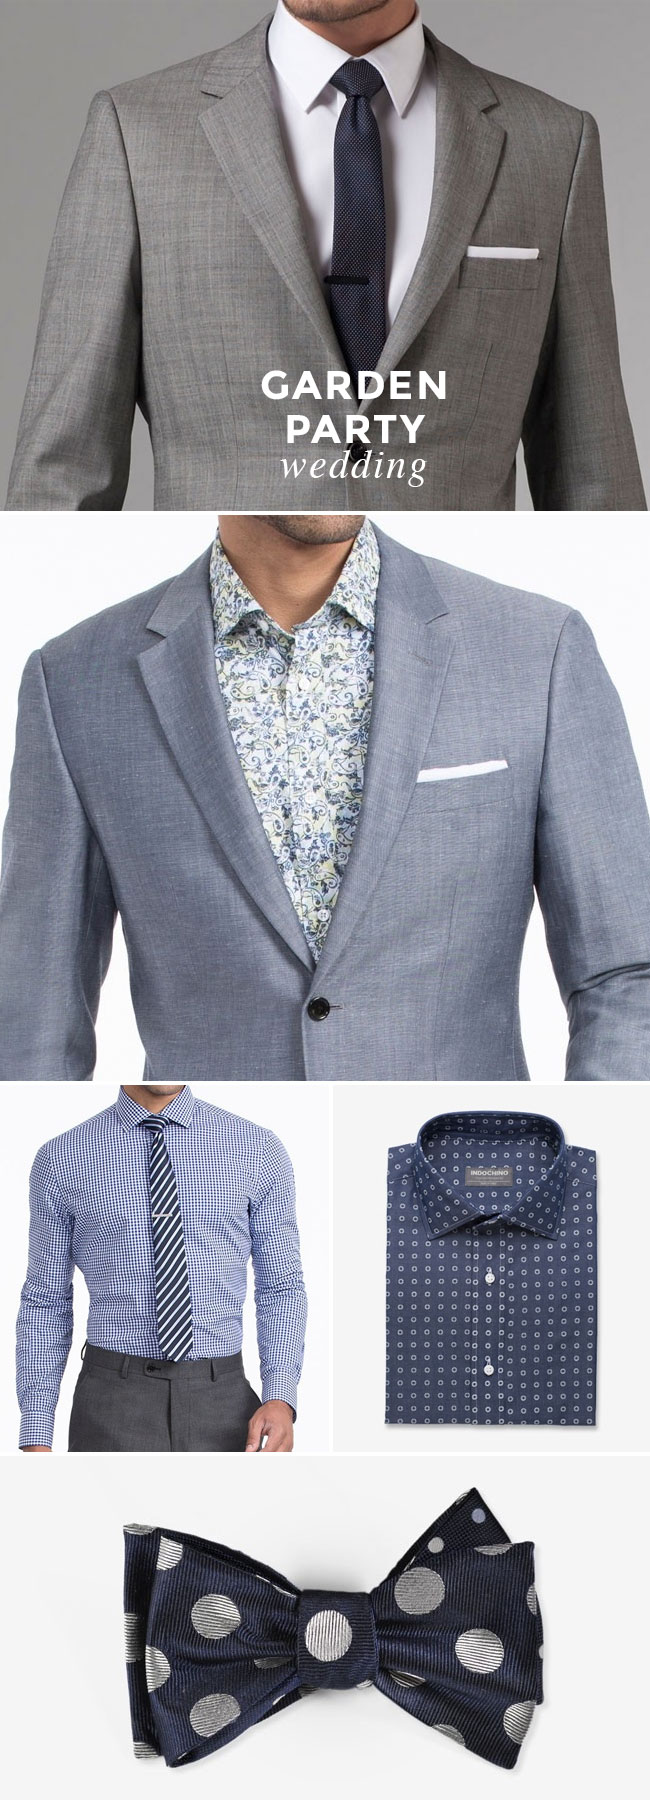 What to Wear to A Wedding - Guy Edition - Garden Party